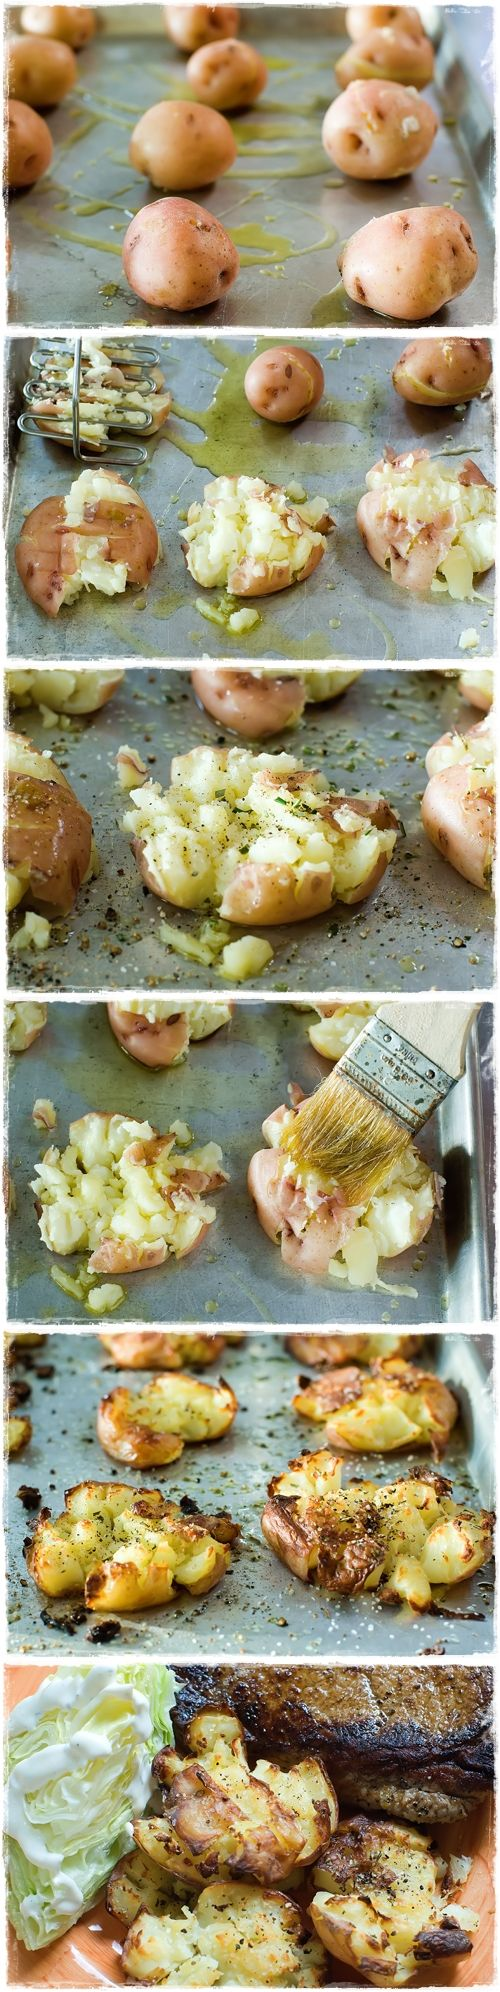 Crushed Hot Potatoes. My friend from Hungary makes these, and they are SO good, bake or boil potatoes before crushing them.